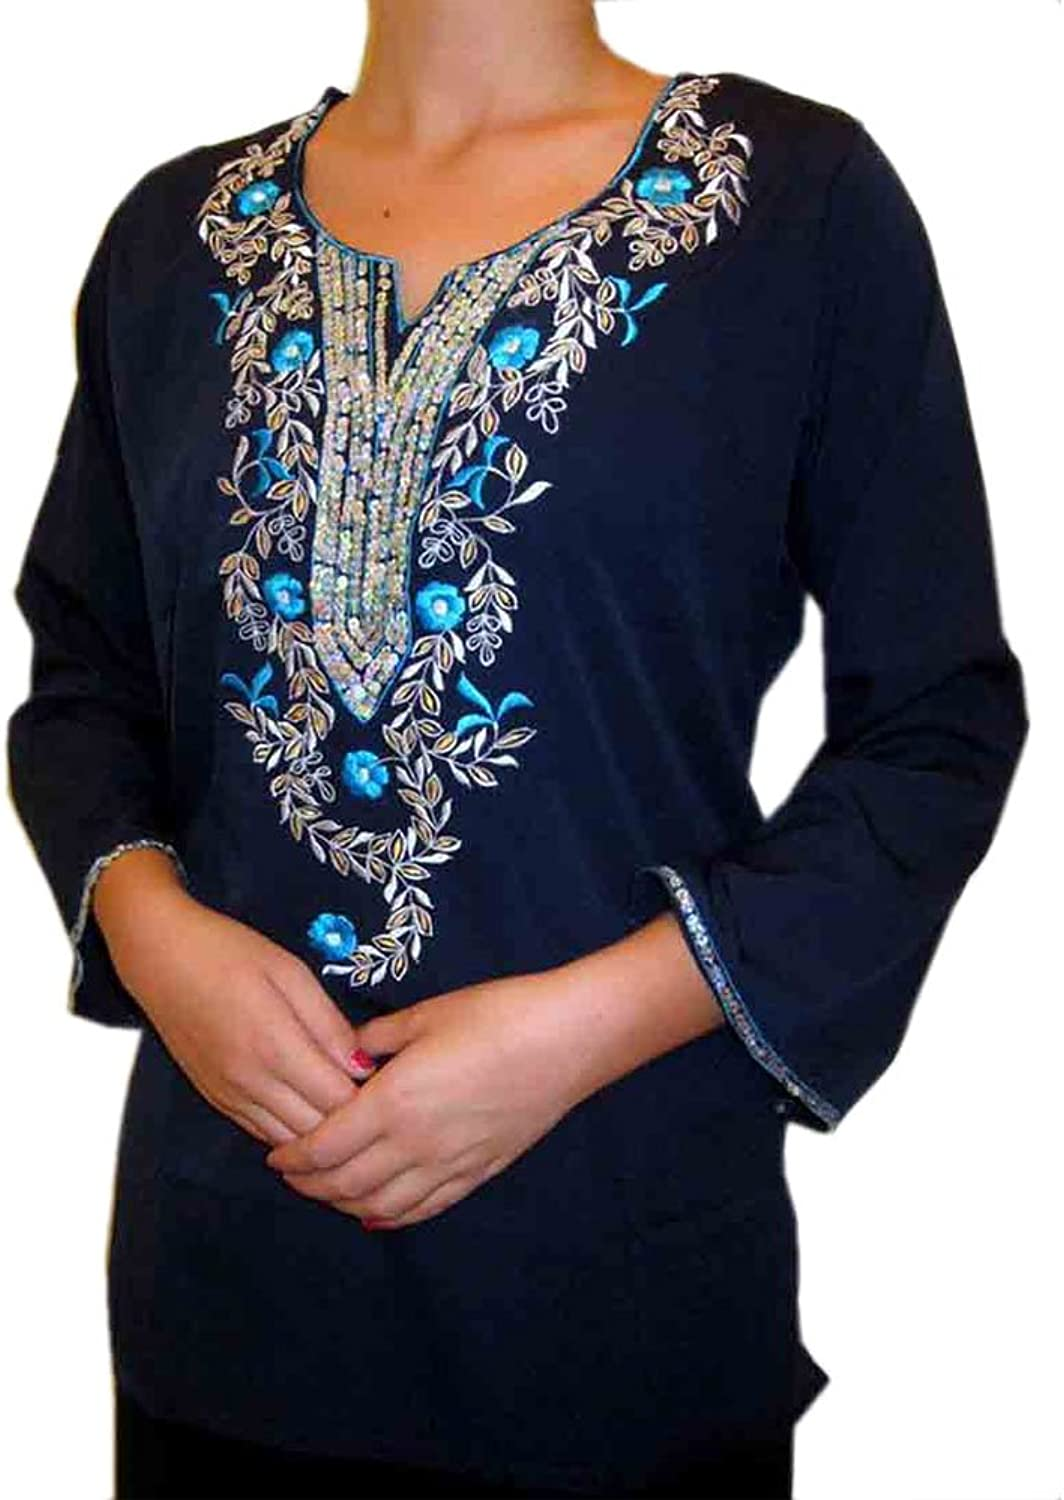 1545 Designs Women's Petite Size Scoop Neck Navy bluee Top